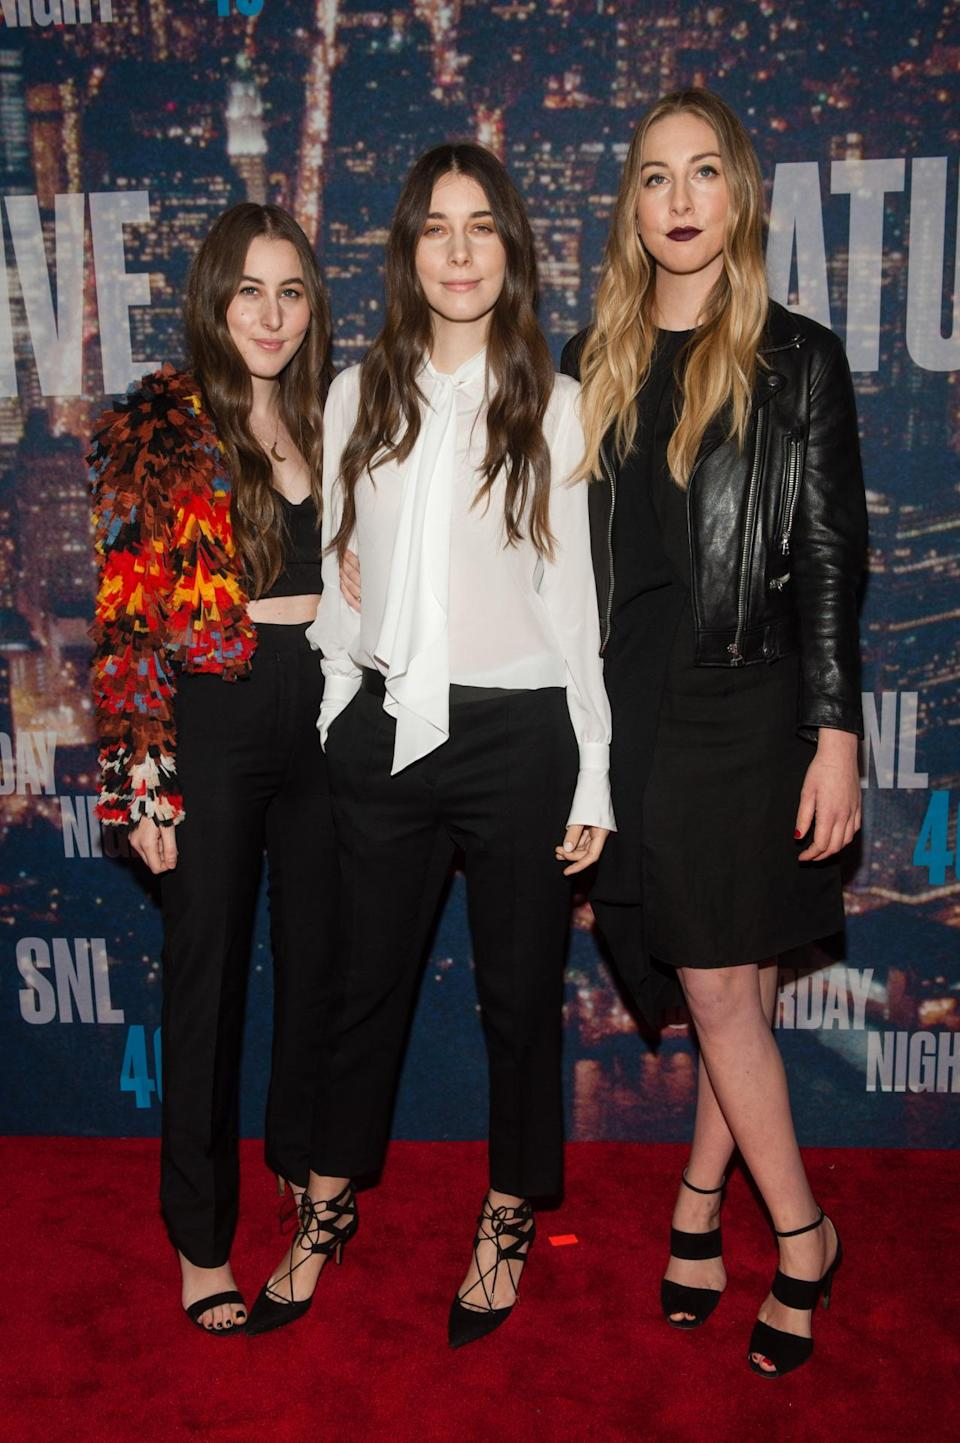 Fresh off stunning on the red carpet at the Grammy Awards, Haim is back with more fashion-forward outfits. The band performed at the anniversary show's after-party and were most likely on hand at the actual event to support their shared BFF Taylor Swift.